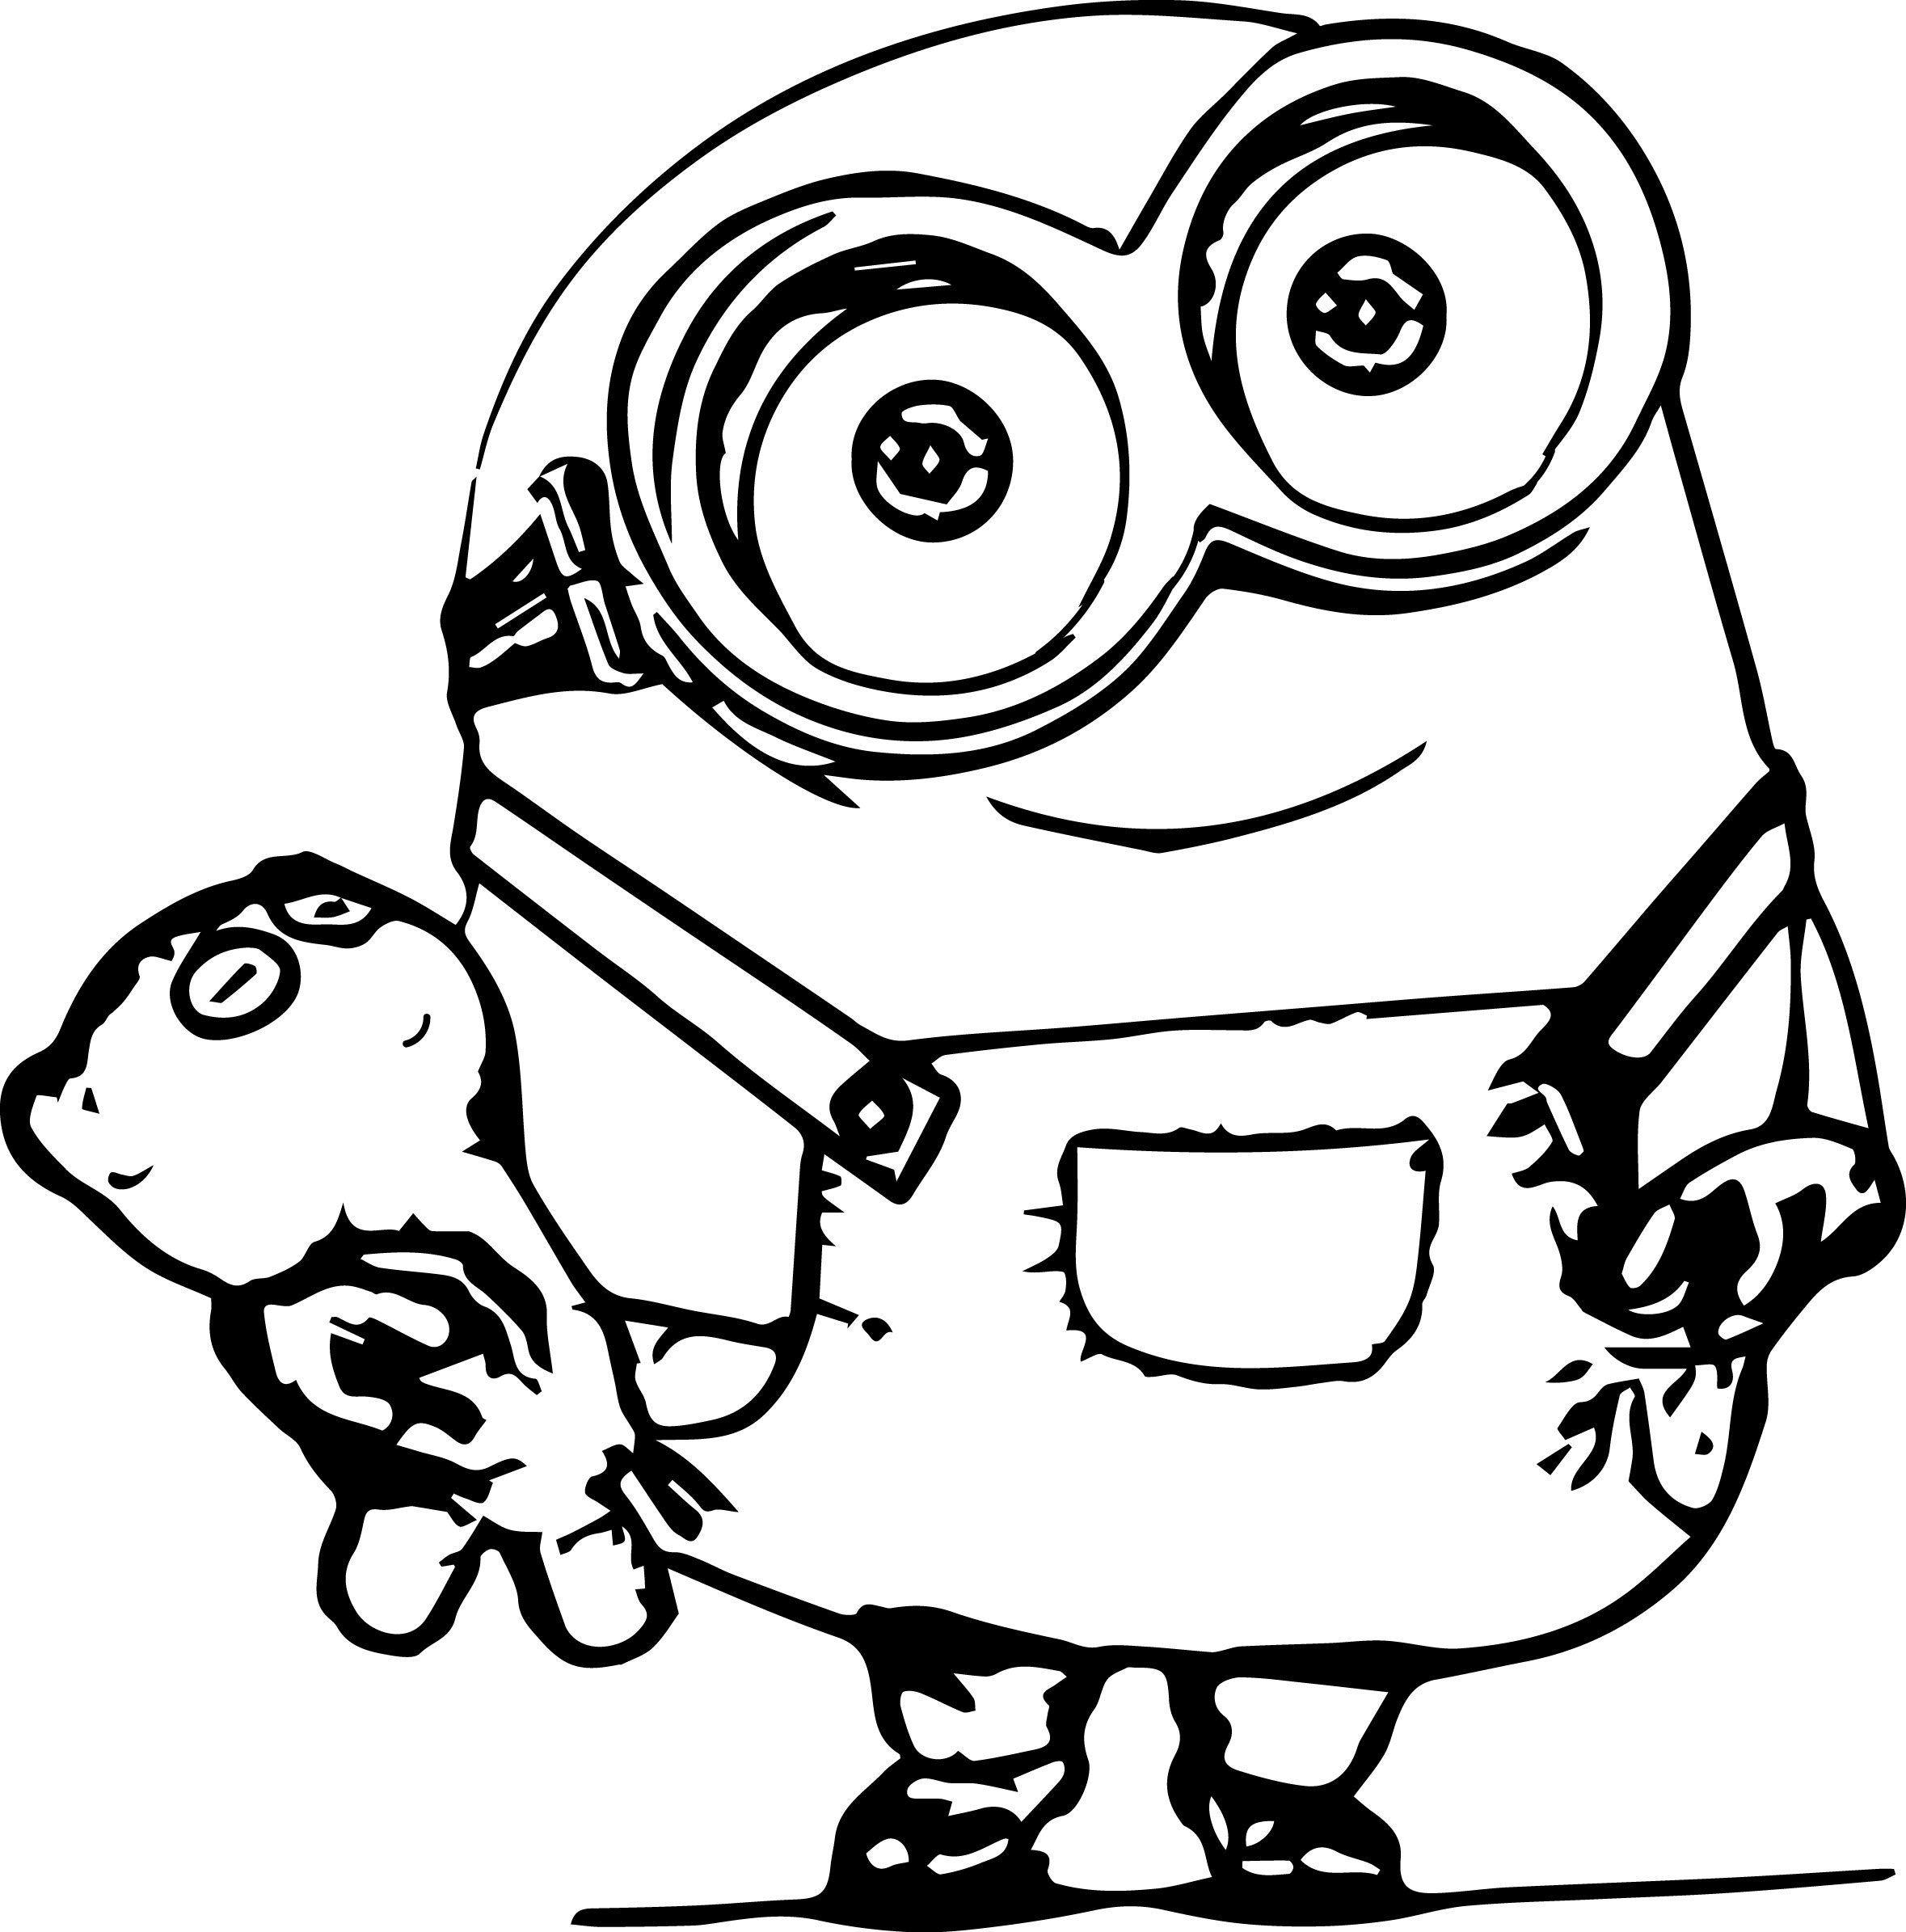 printable minions print download minion coloring pages for kids to have printable minions